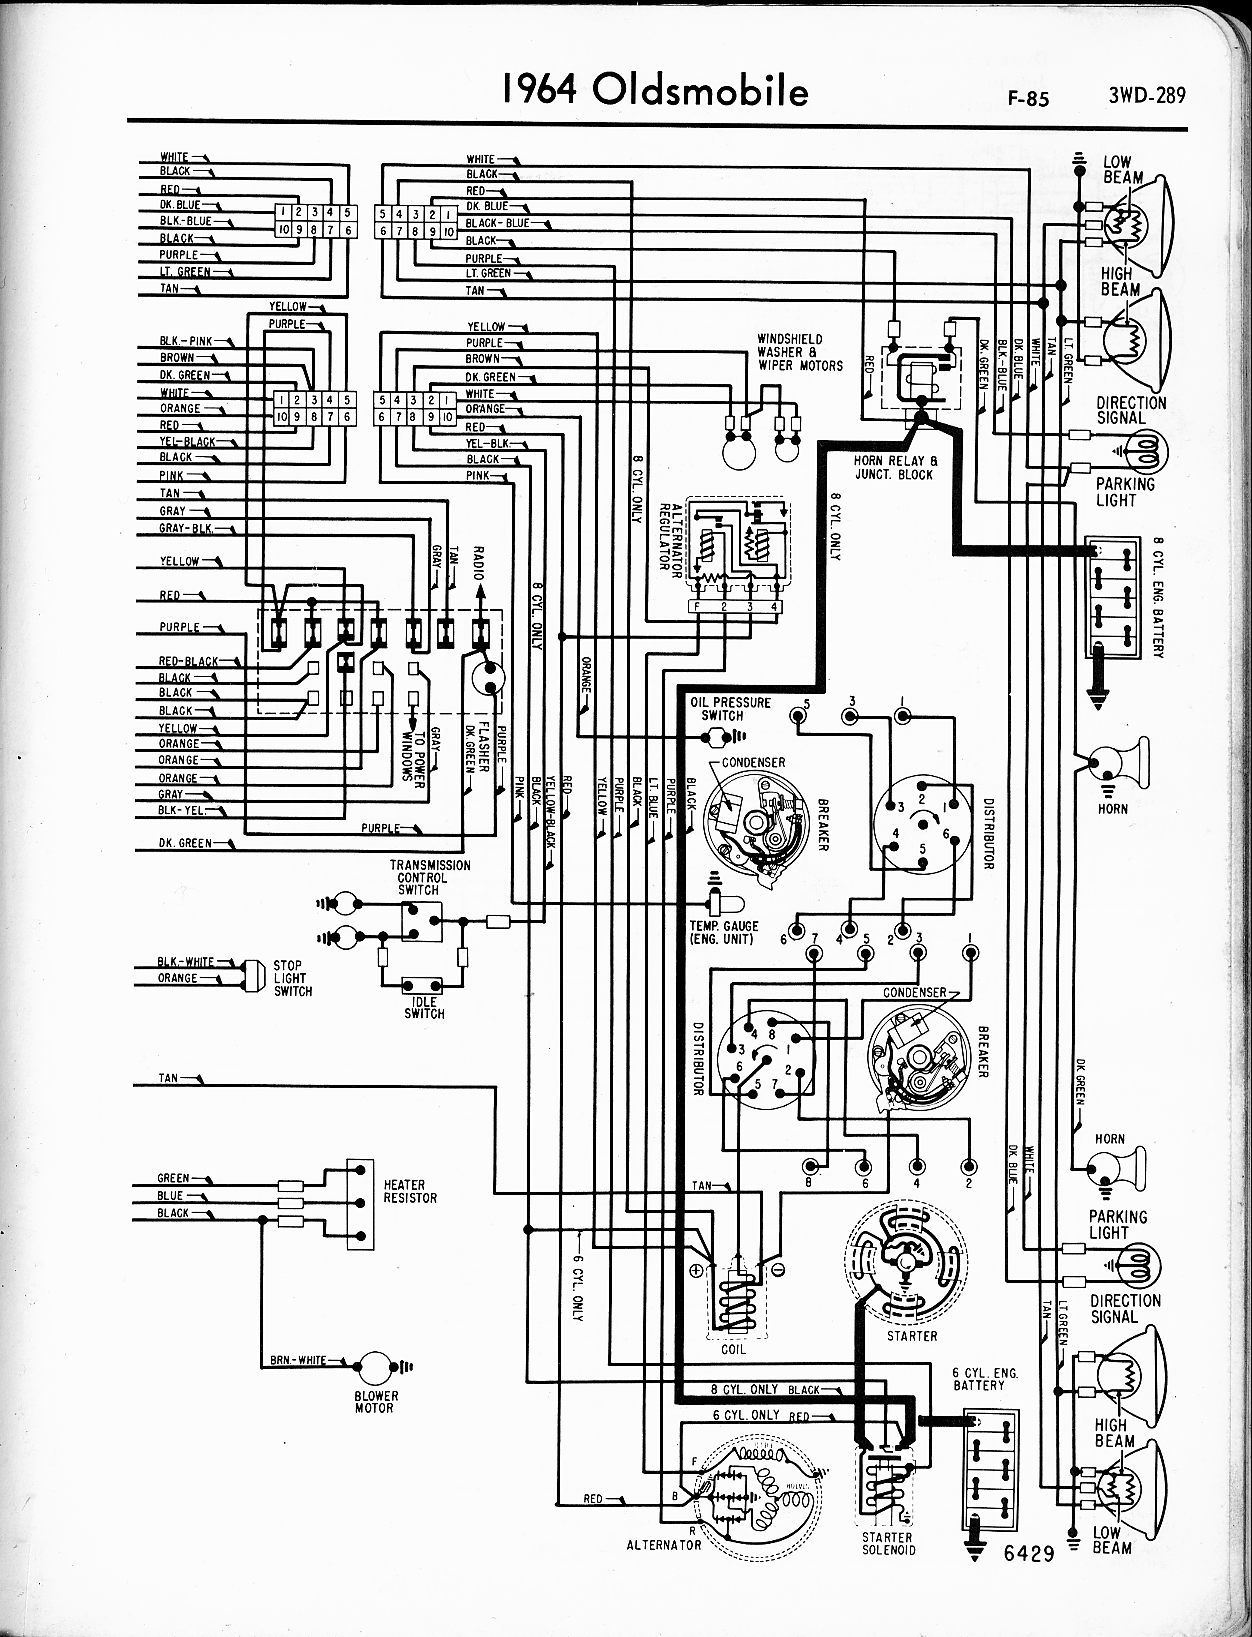 [DIAGRAM] 1970 Oldsmobile 442 Wiring Diagram FULL Version